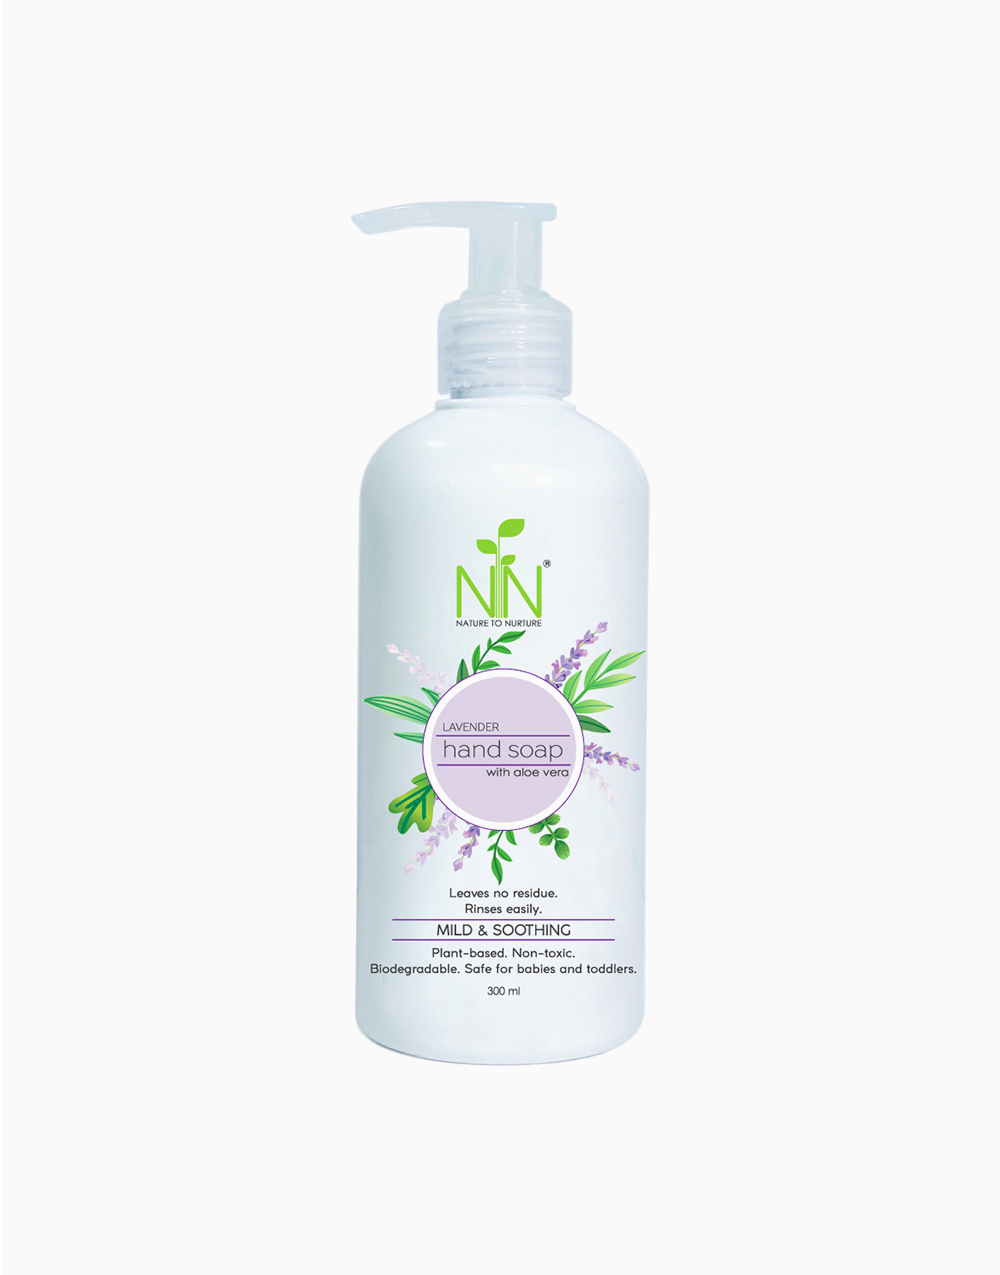 Hand Soap With Aloe Vera by Nature to Nurture | Lavender